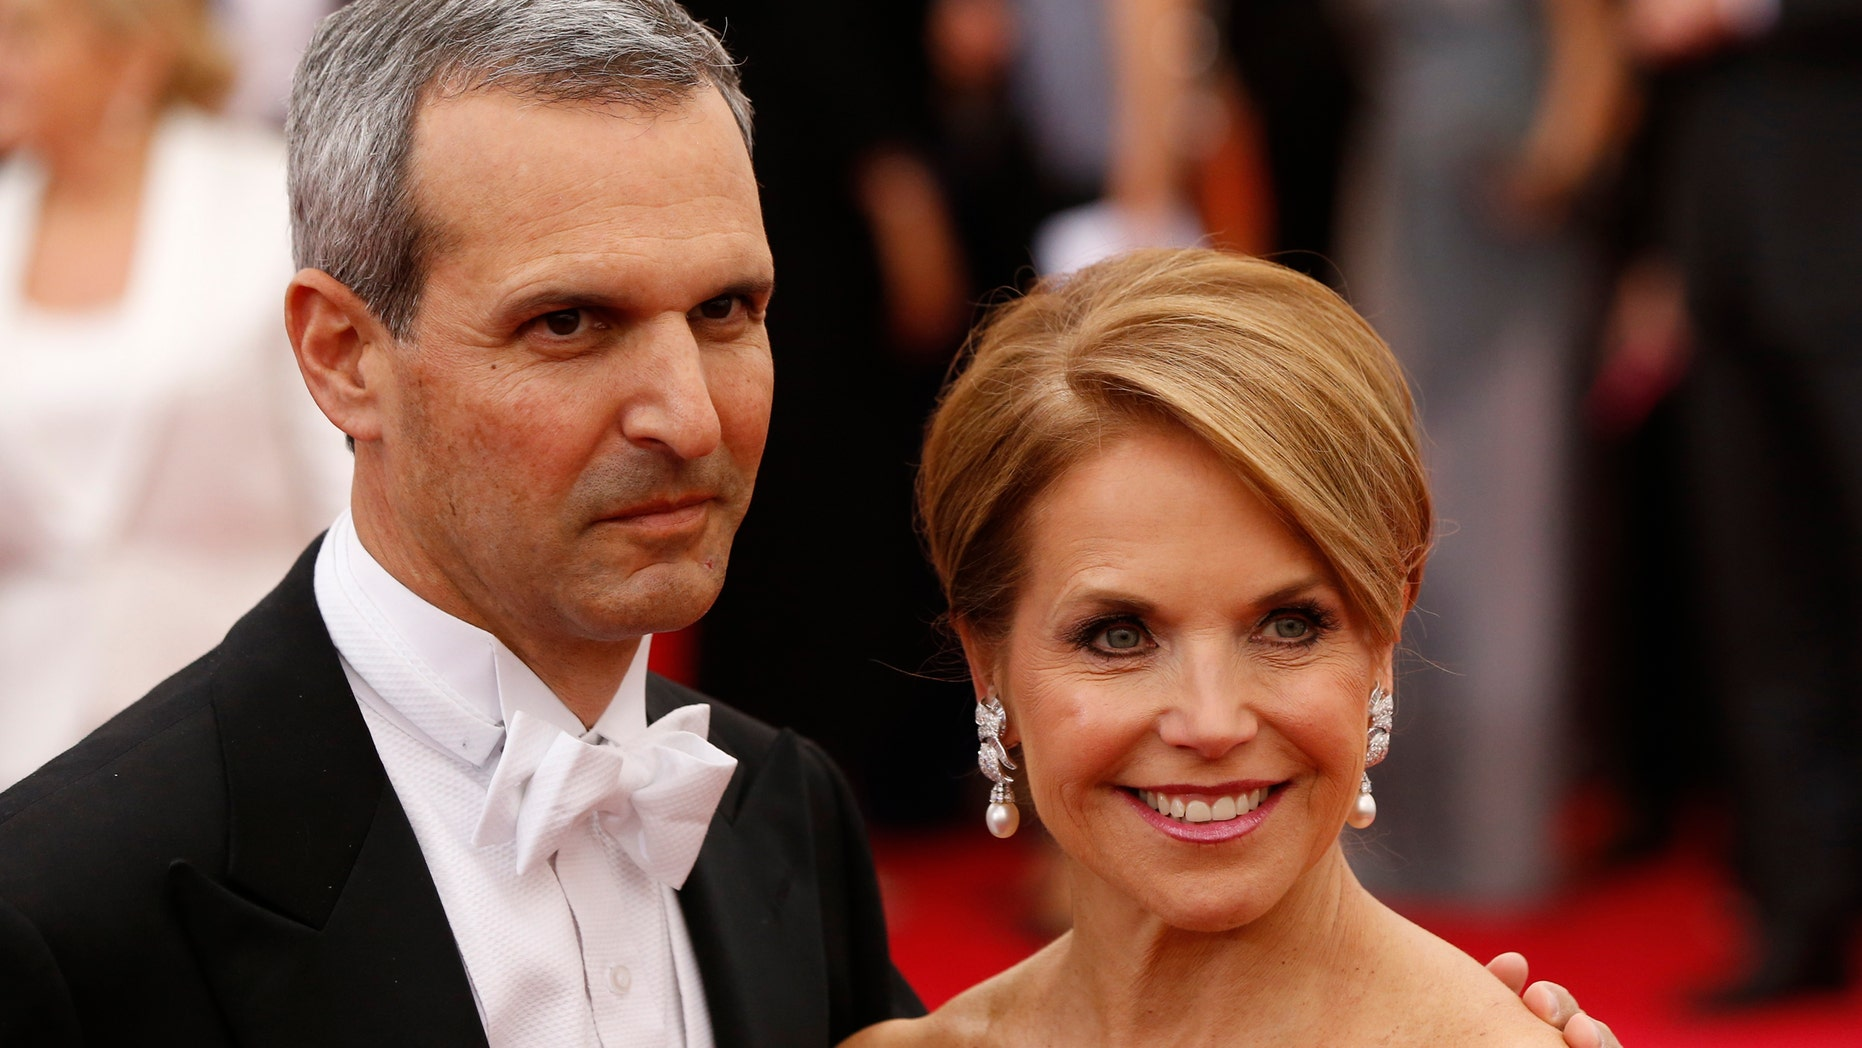 May 5, 2014. Katie Couric and boyfriend John Molner arrive at the Metropolitan Museum of Art Costume Institute Gala Benefit in New York.